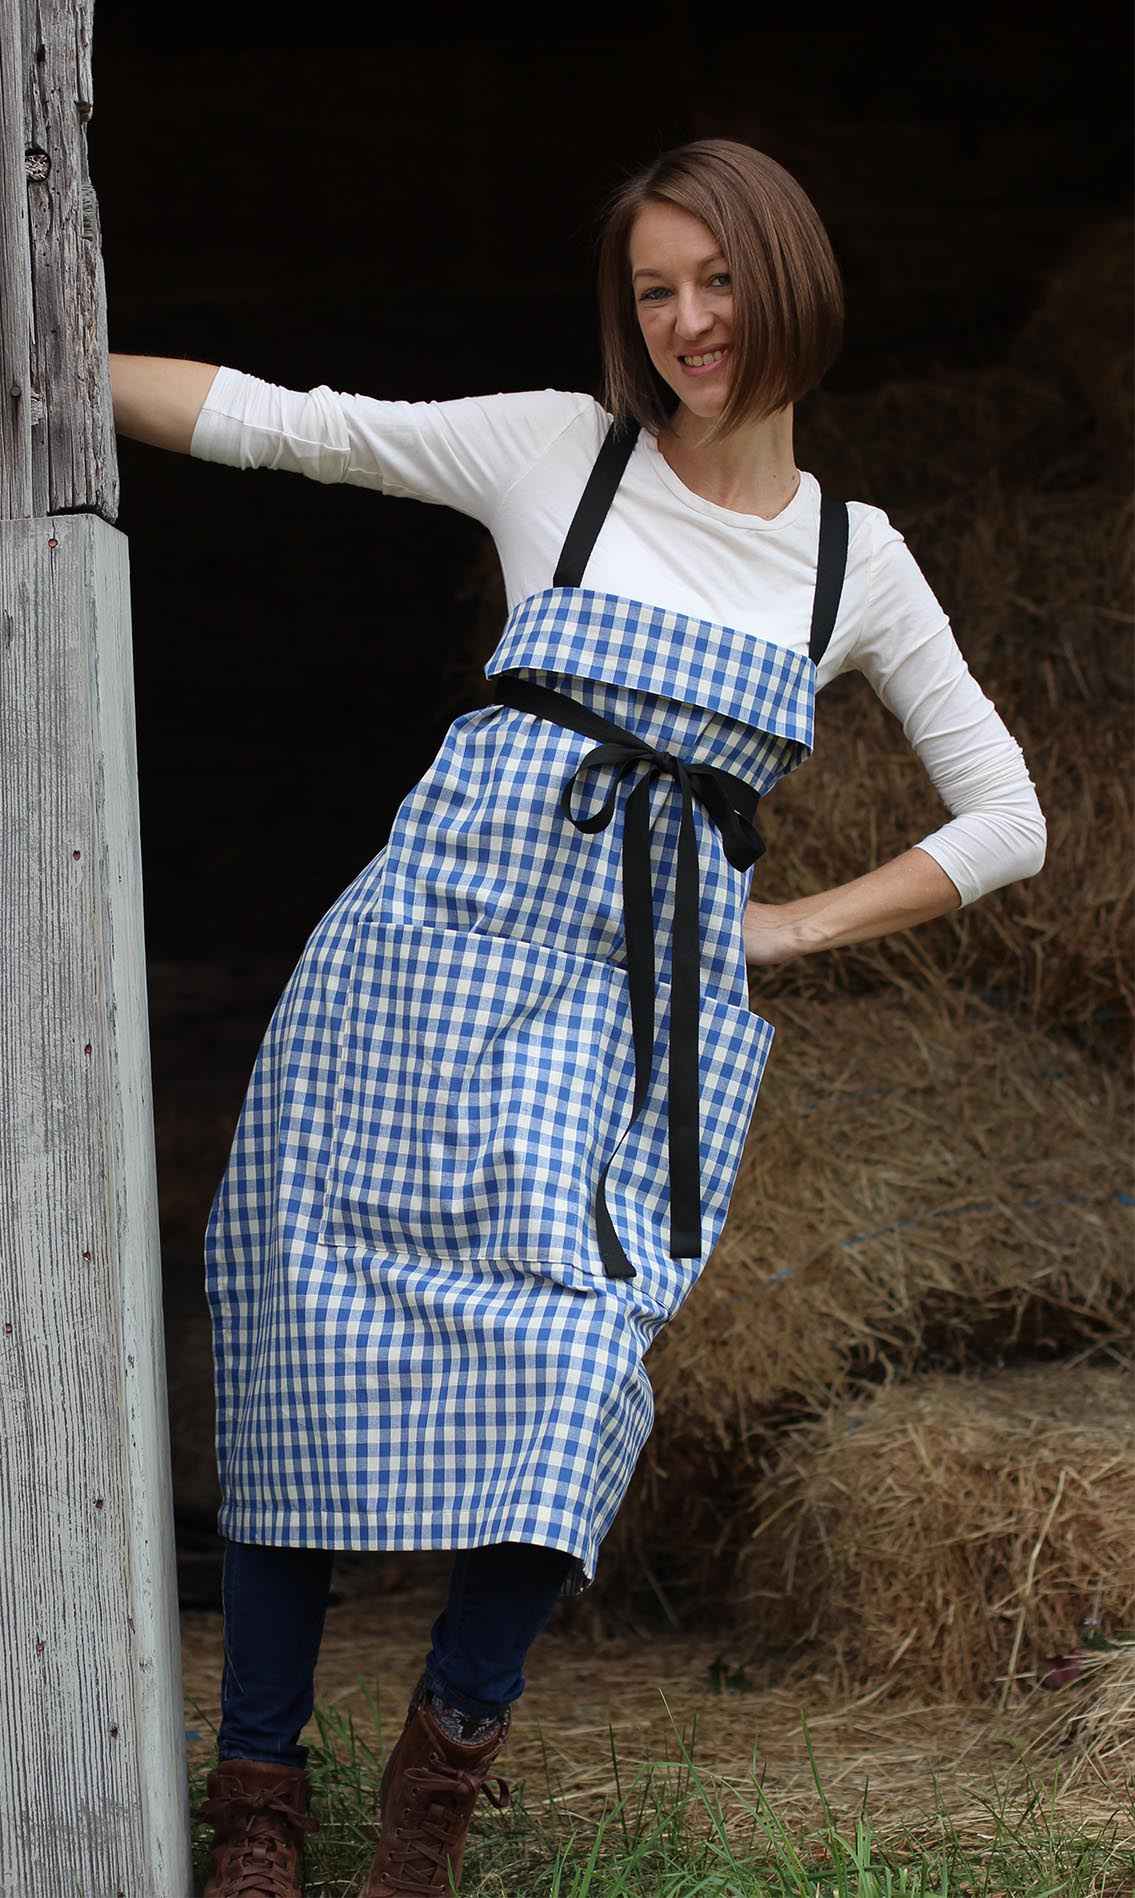 The Wrap Apron in Blue and White Check by The Vermont Apron Company - Pocket View